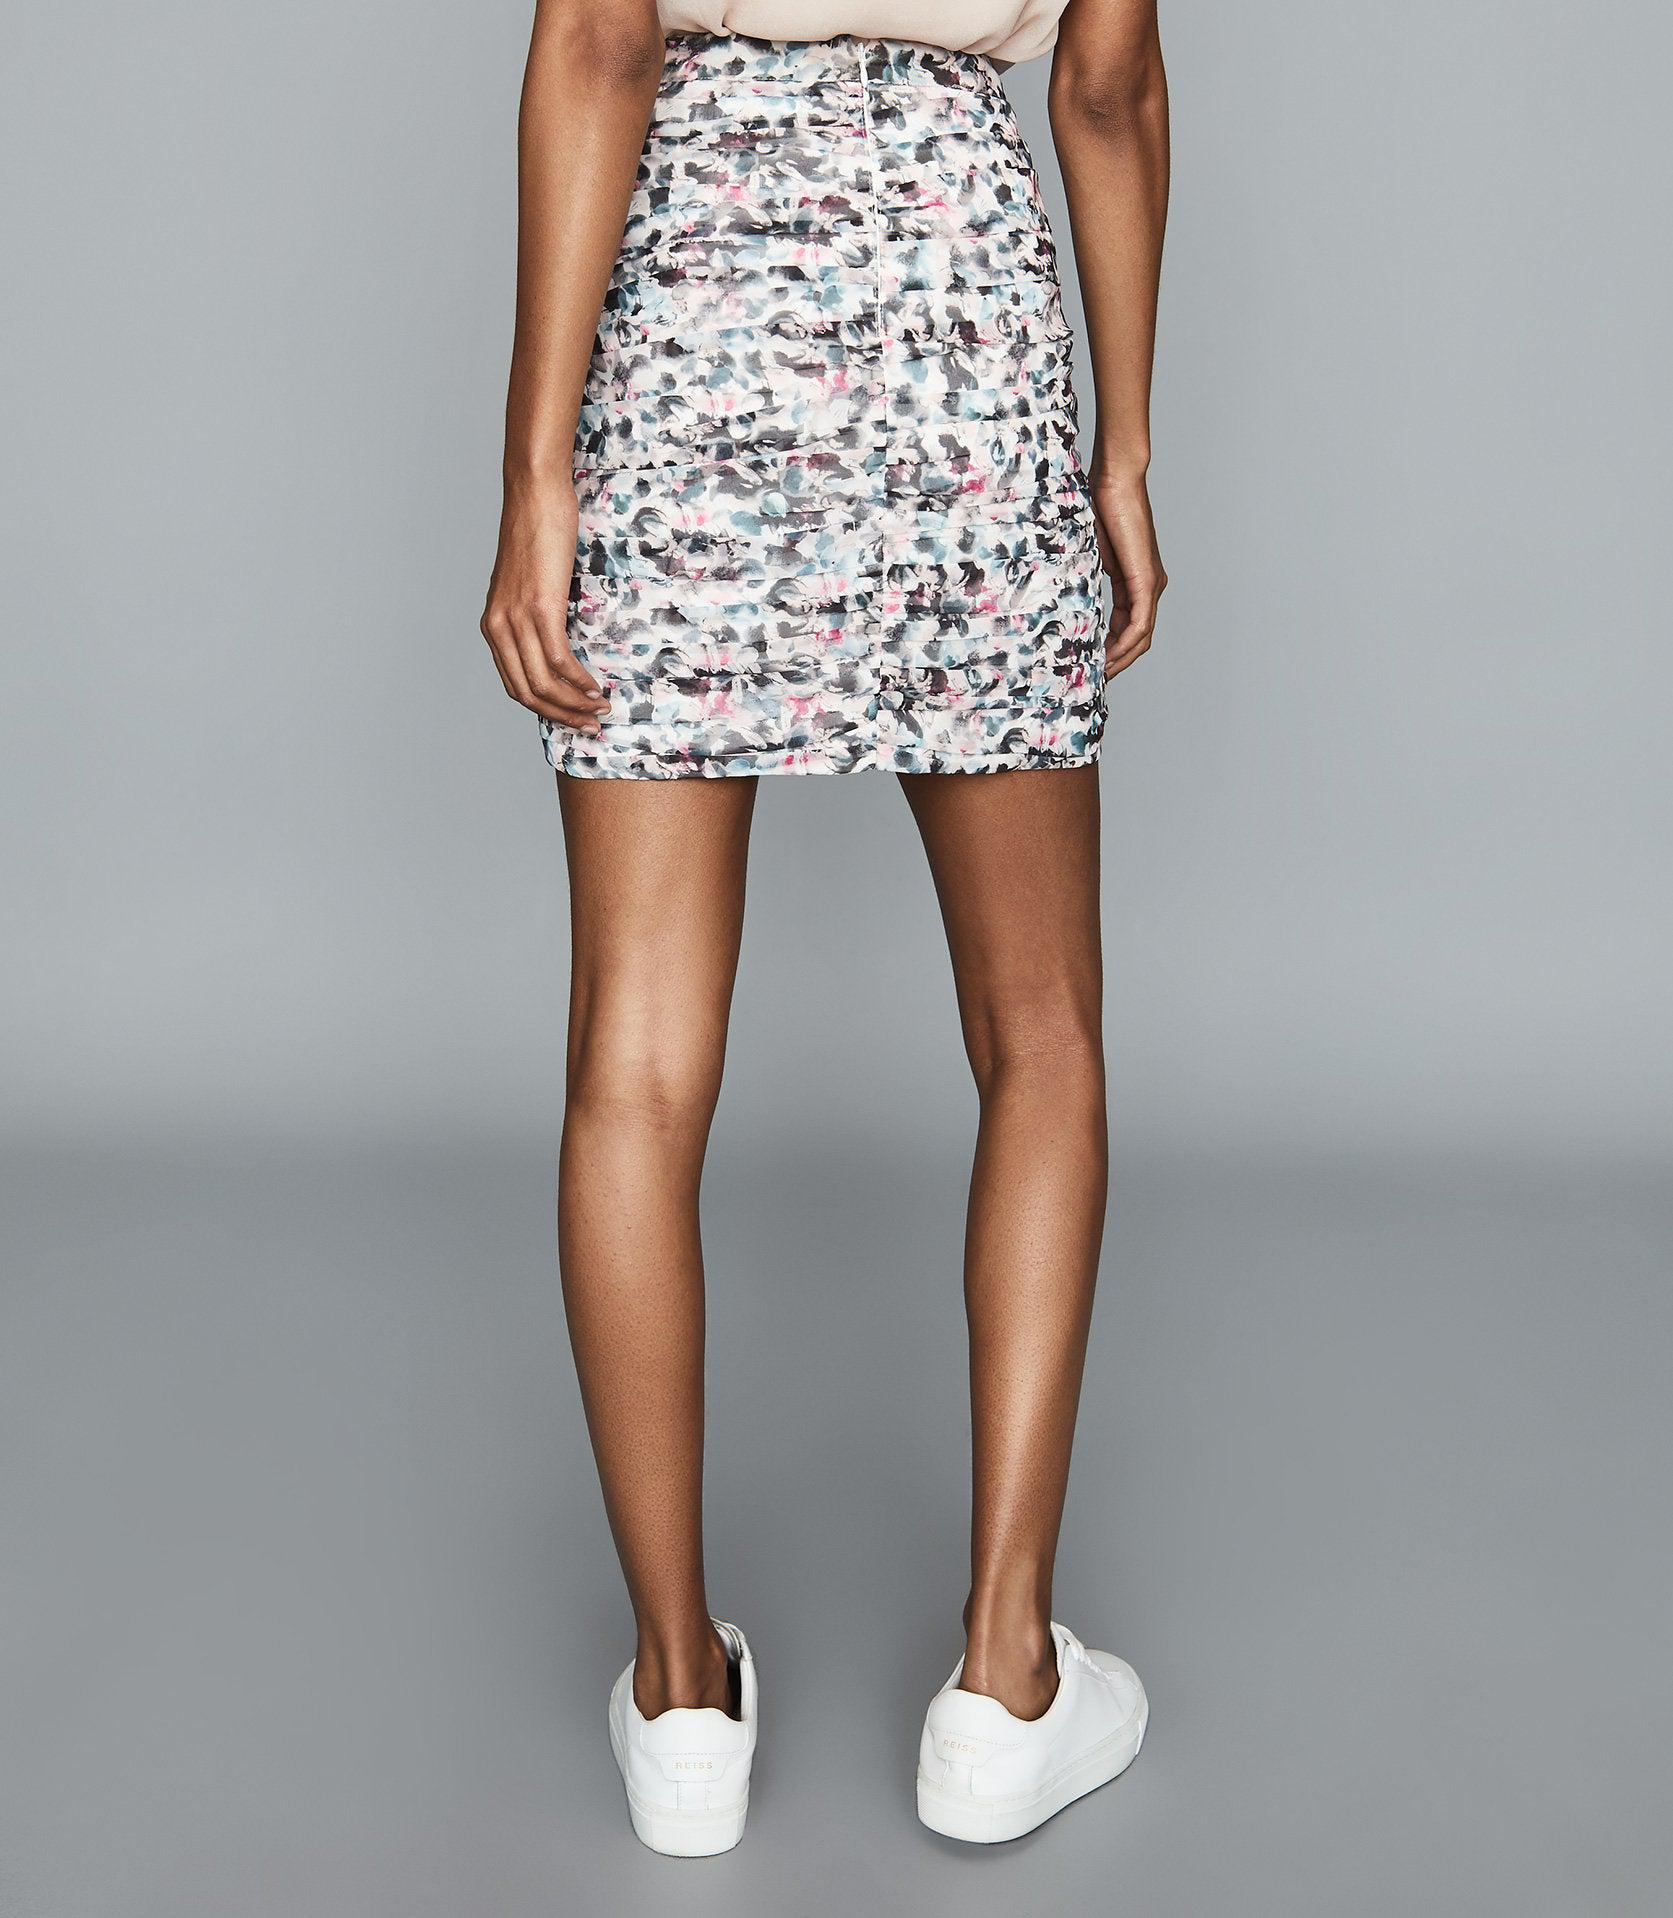 LUCIELLE - FLORAL PRINT RUCHED MINI SKIRT 3